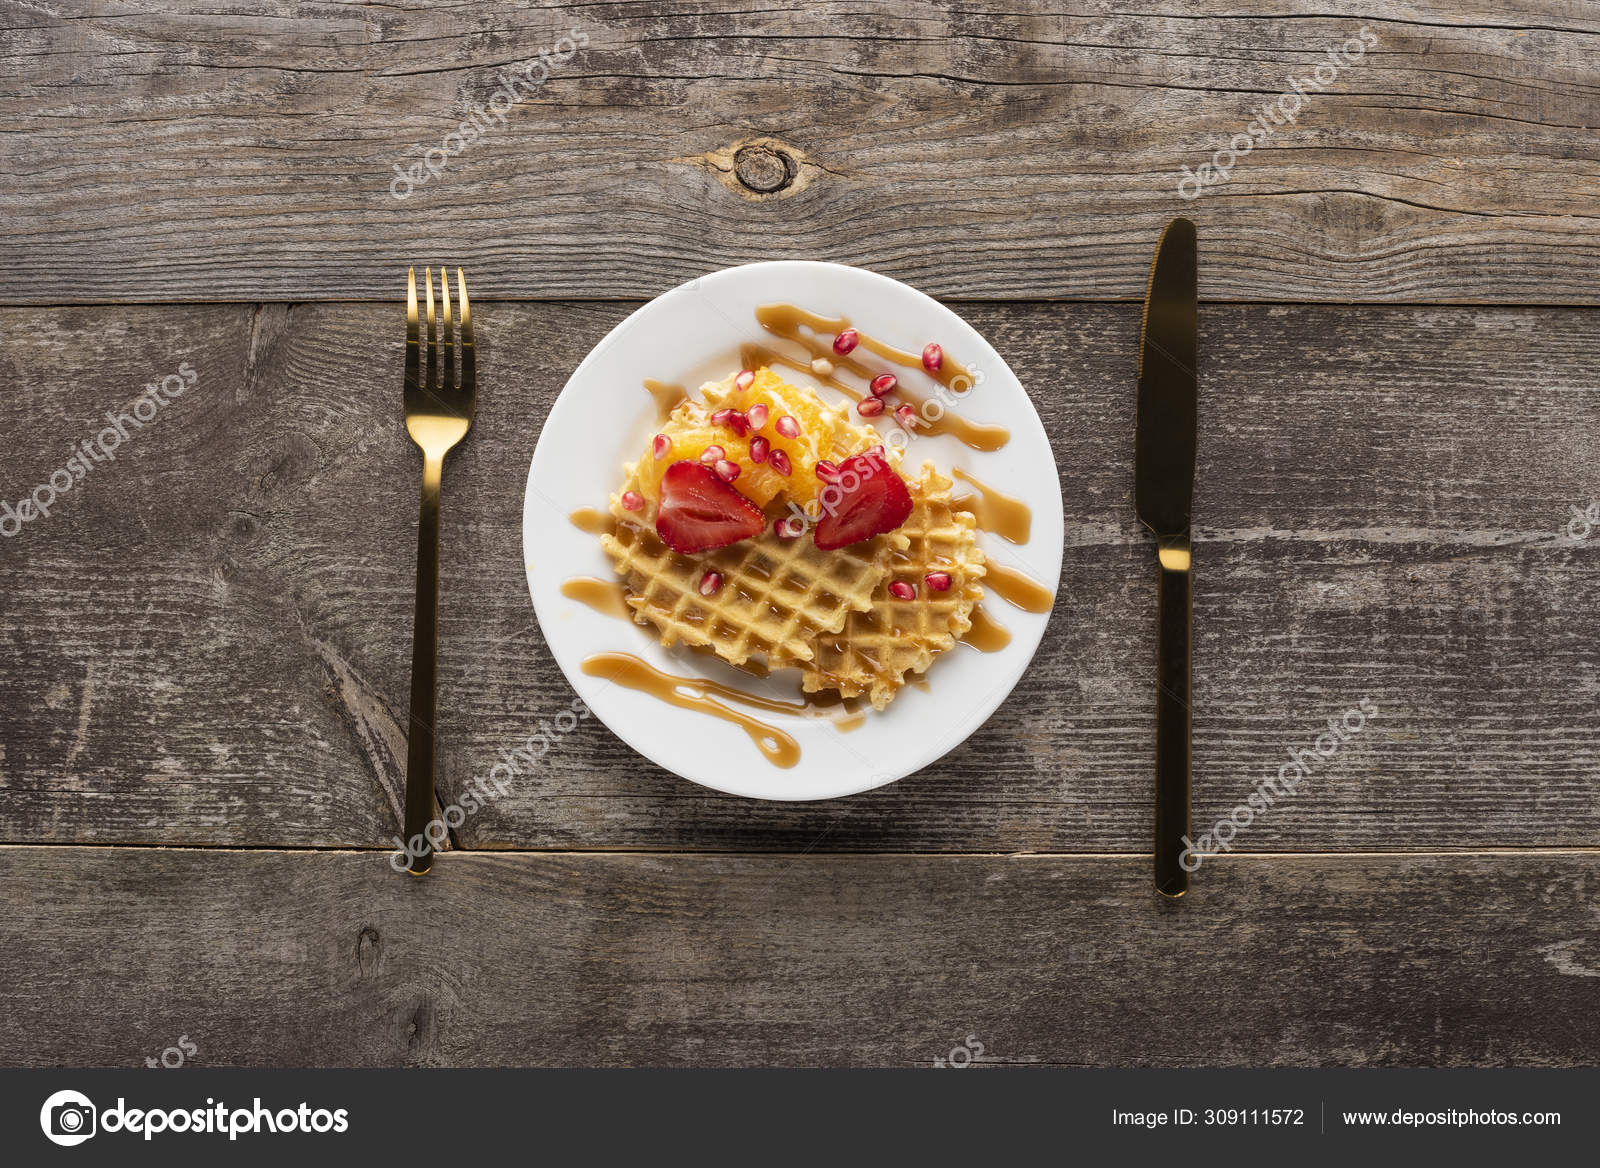 Waffles with strawberries on a white plate on a white background with golden fork and knife